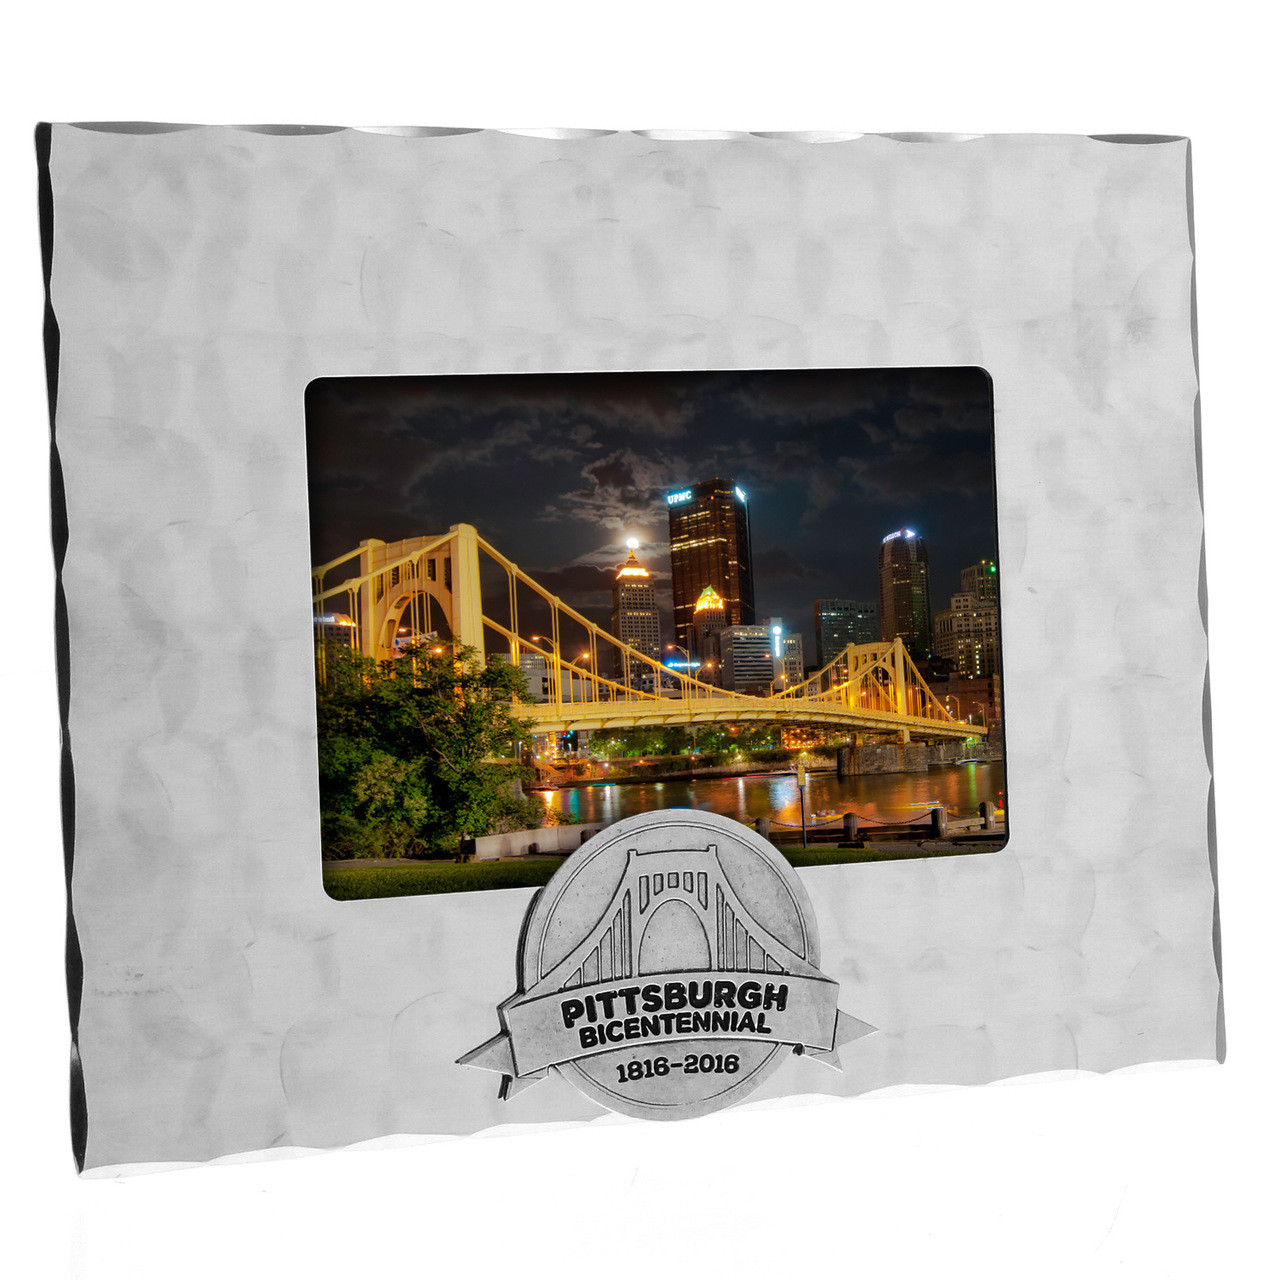 Pittsburgh Bicentennial 35 X 5 Photo Frame Wendell August